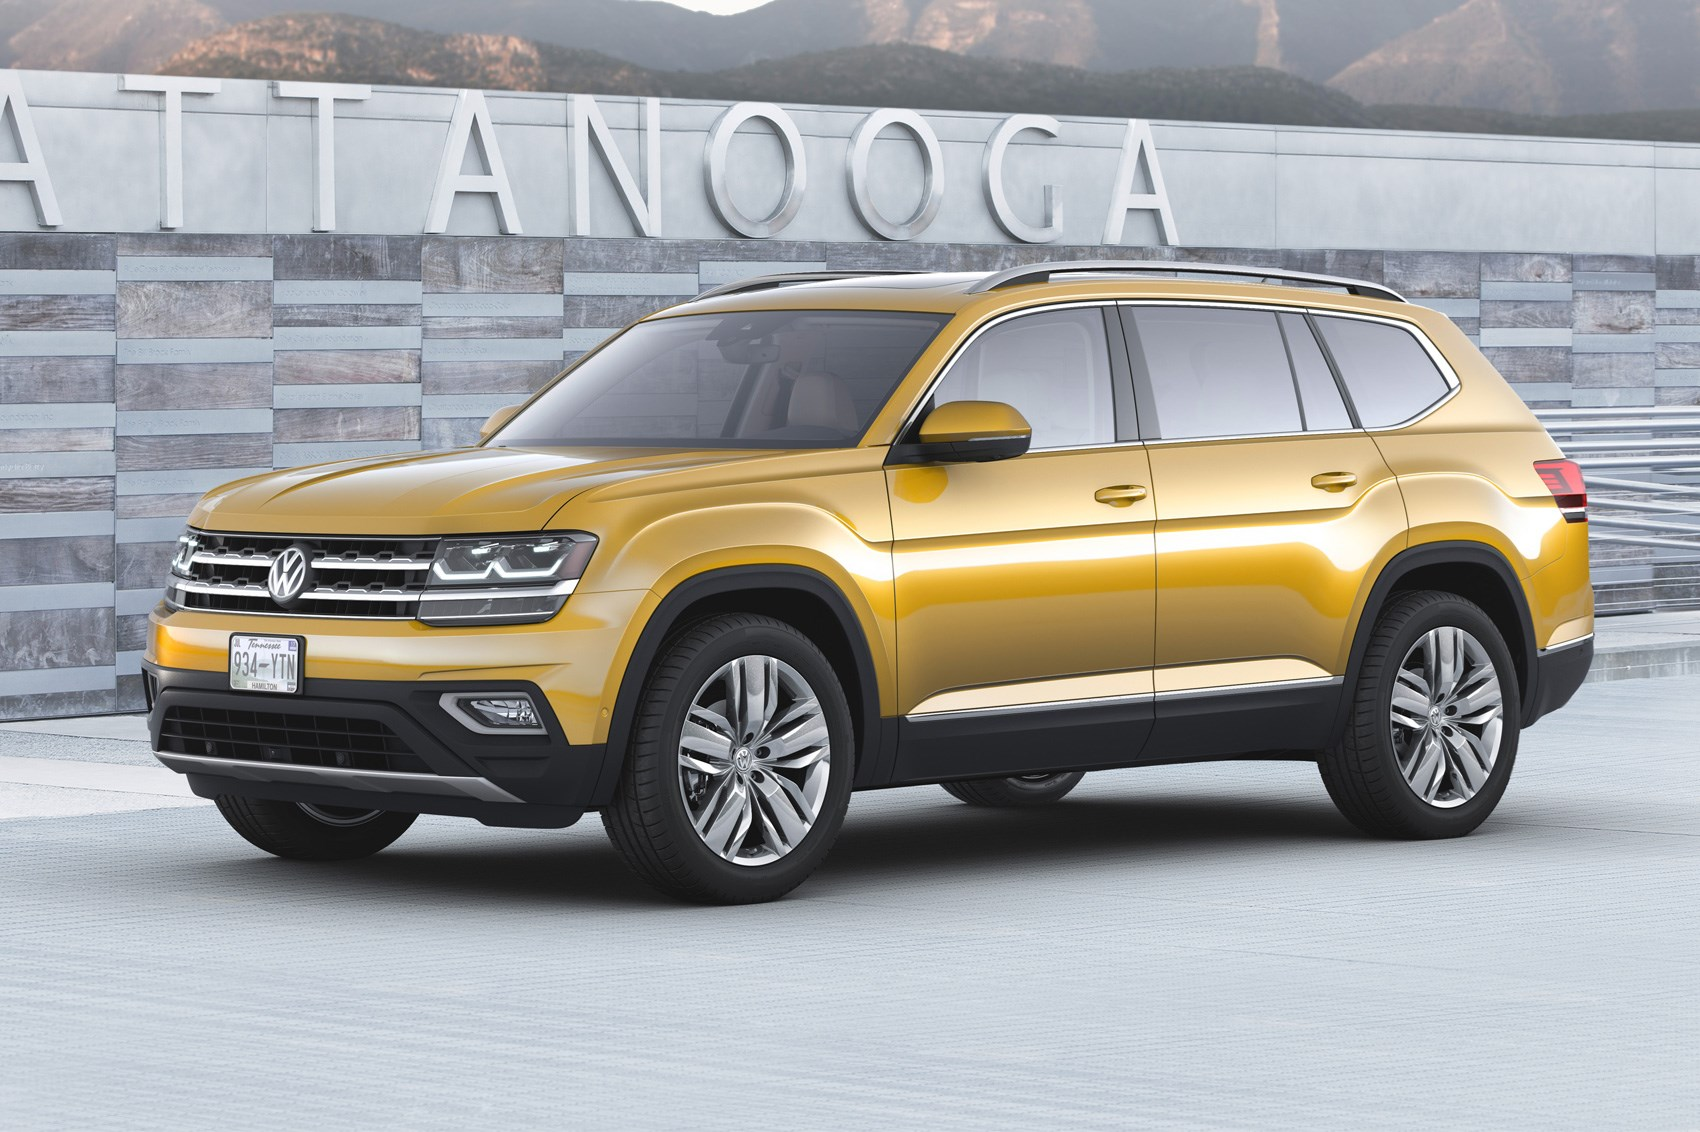 seven seat vw atlas suv unveiled in the us car magazine. Black Bedroom Furniture Sets. Home Design Ideas